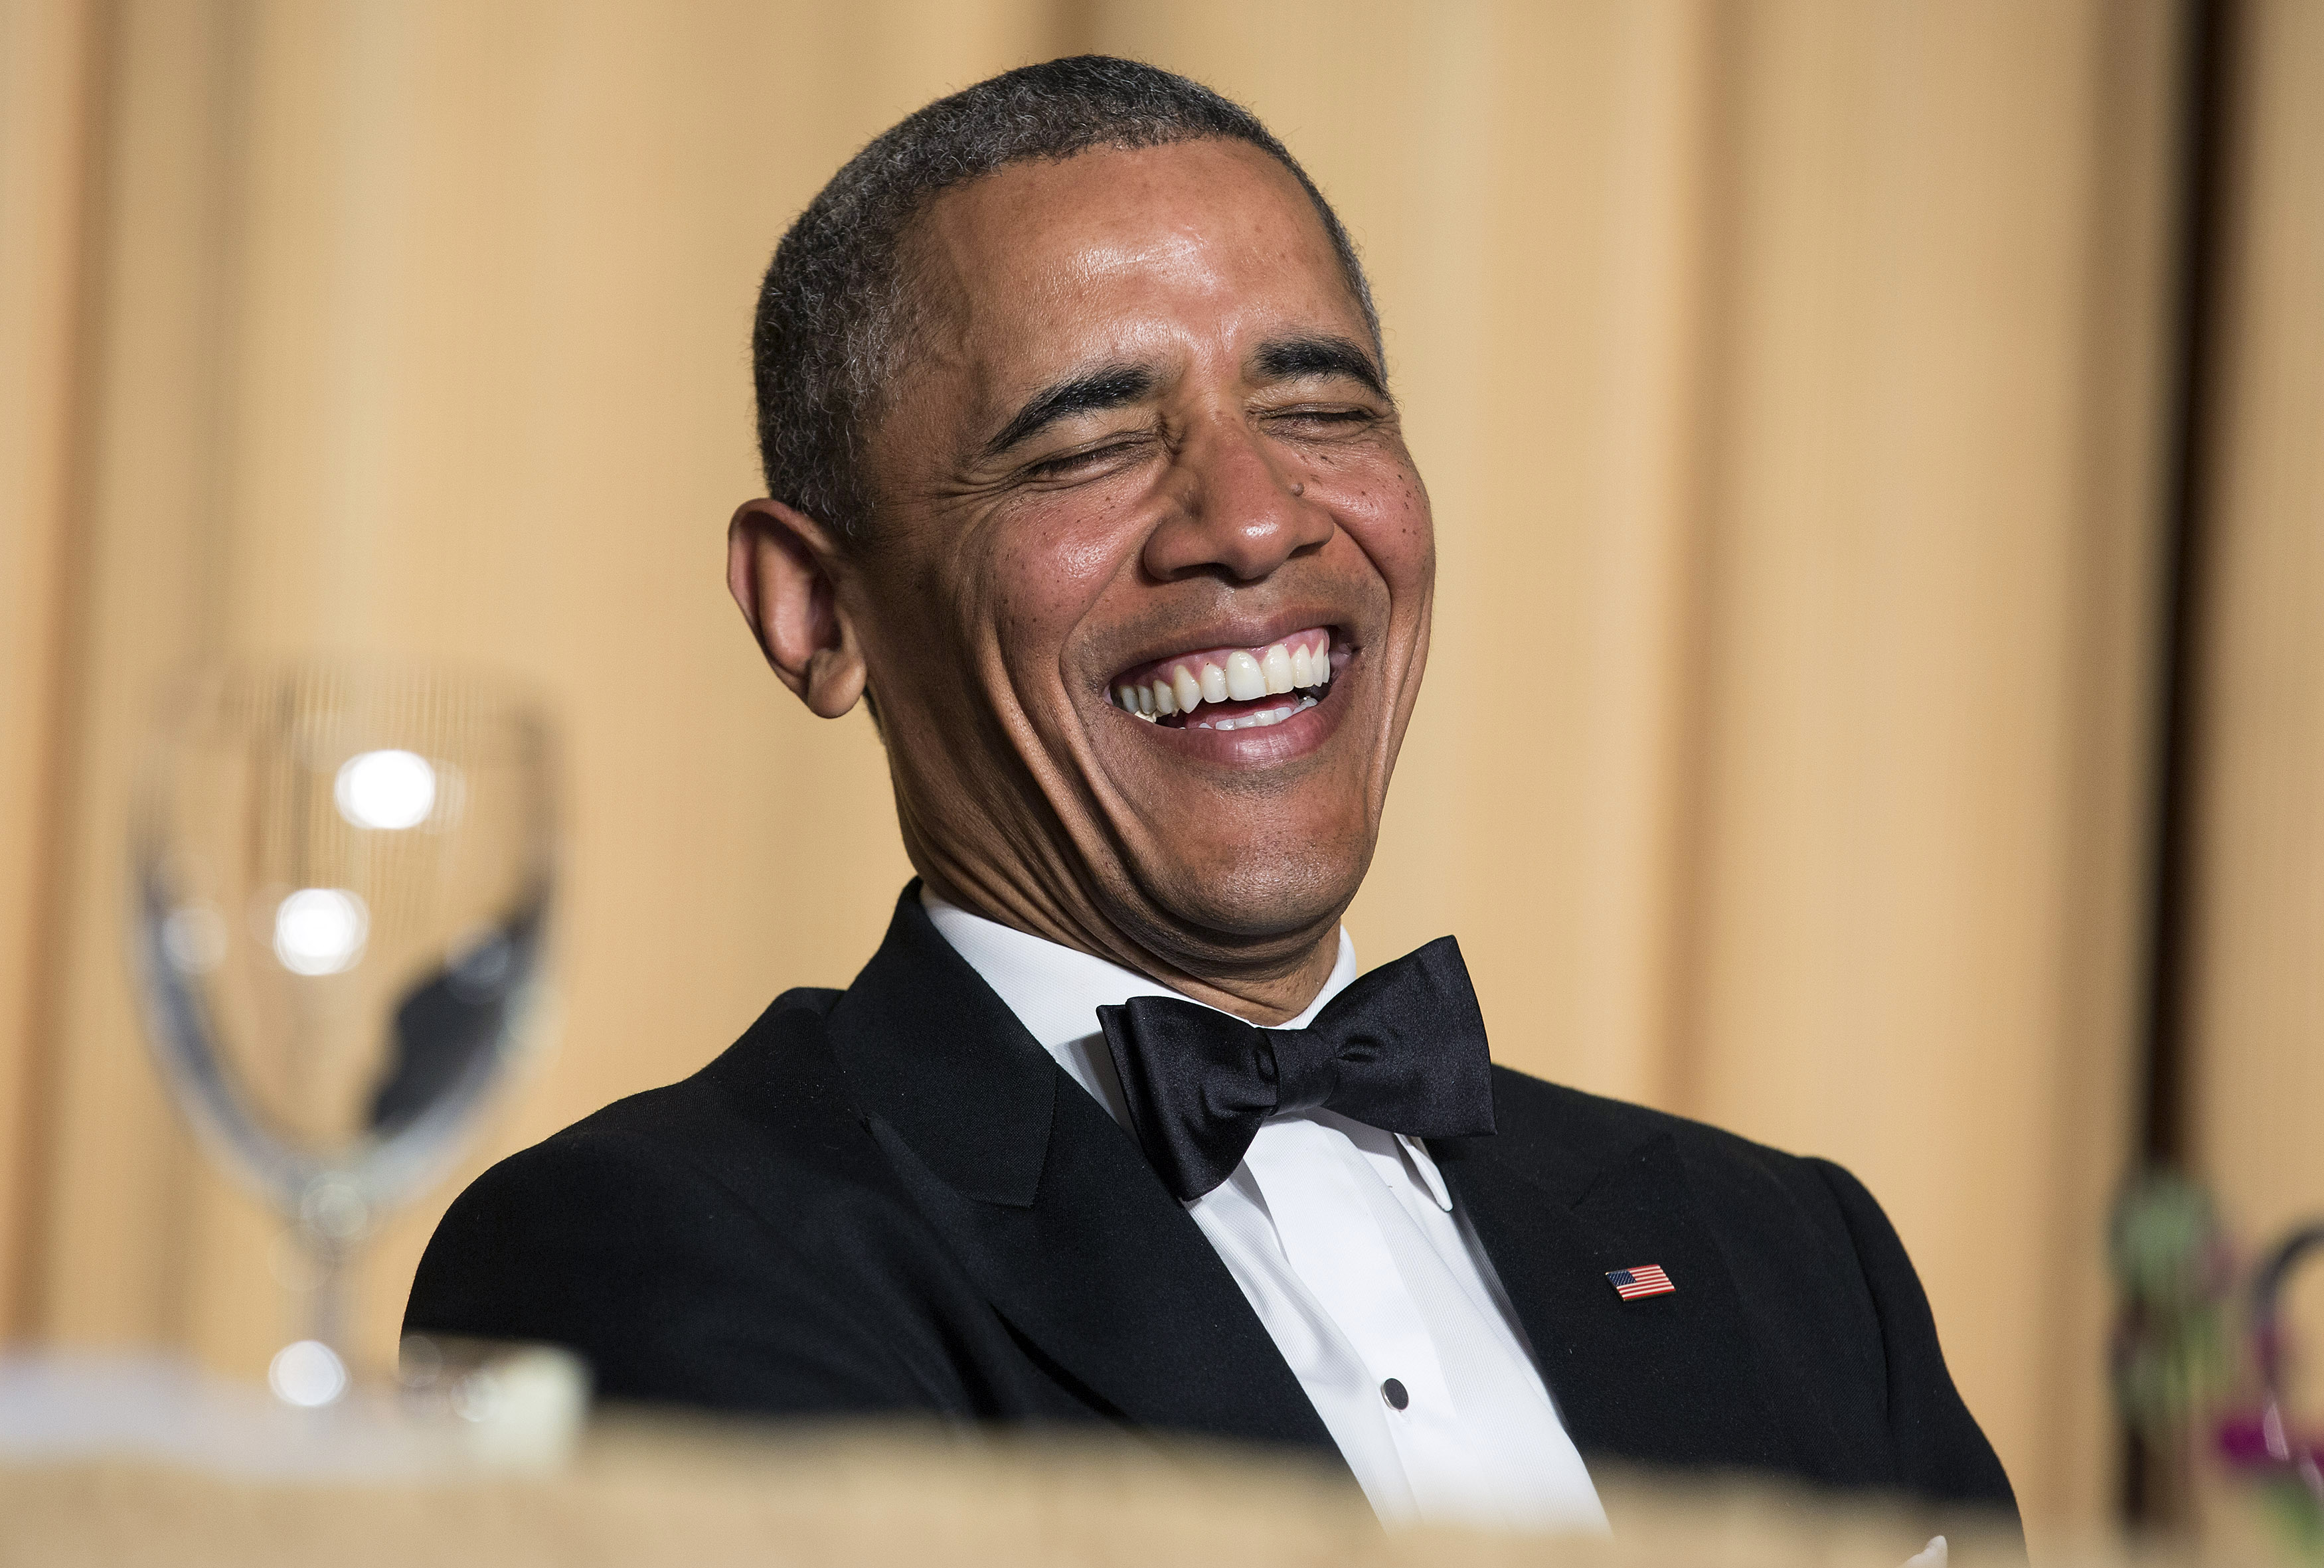 Barack Obamas Latest Speech Proves He Missed His True Calling As A Comedian Obama laugh